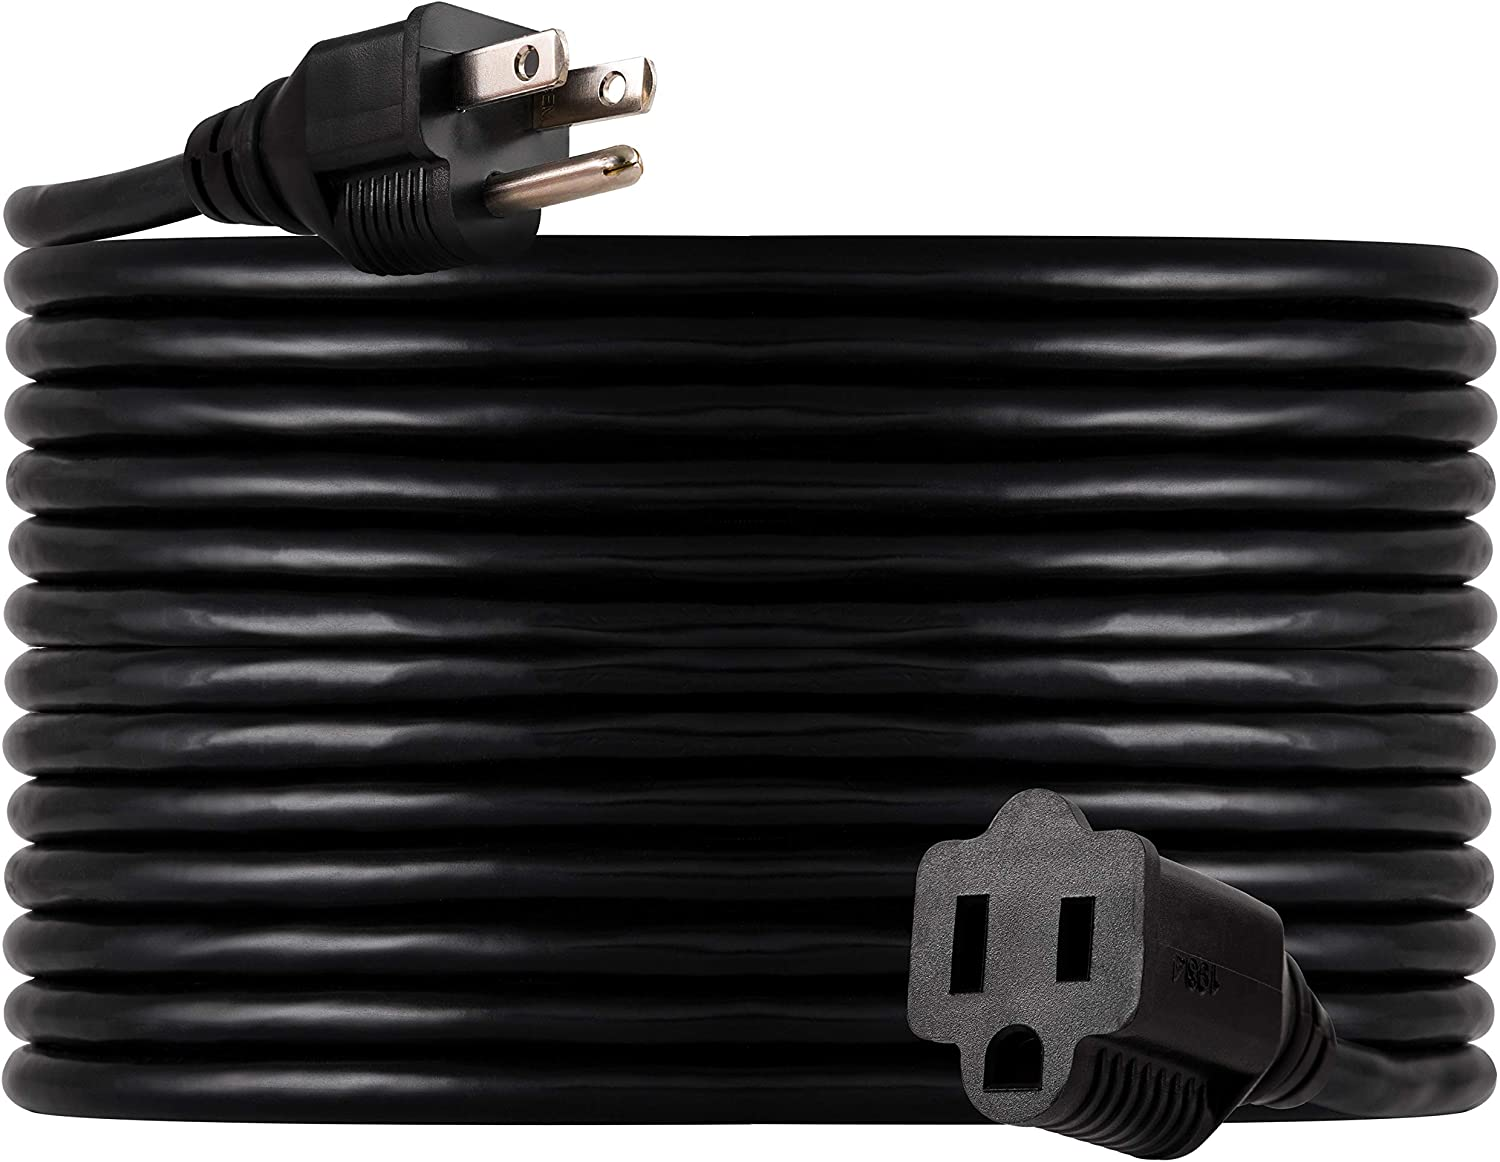 UltraPro, Black, GE 40 ft Extension, Indoor/Outdoor, Grounded, Double Insulated Cord, UL Listed, 36826